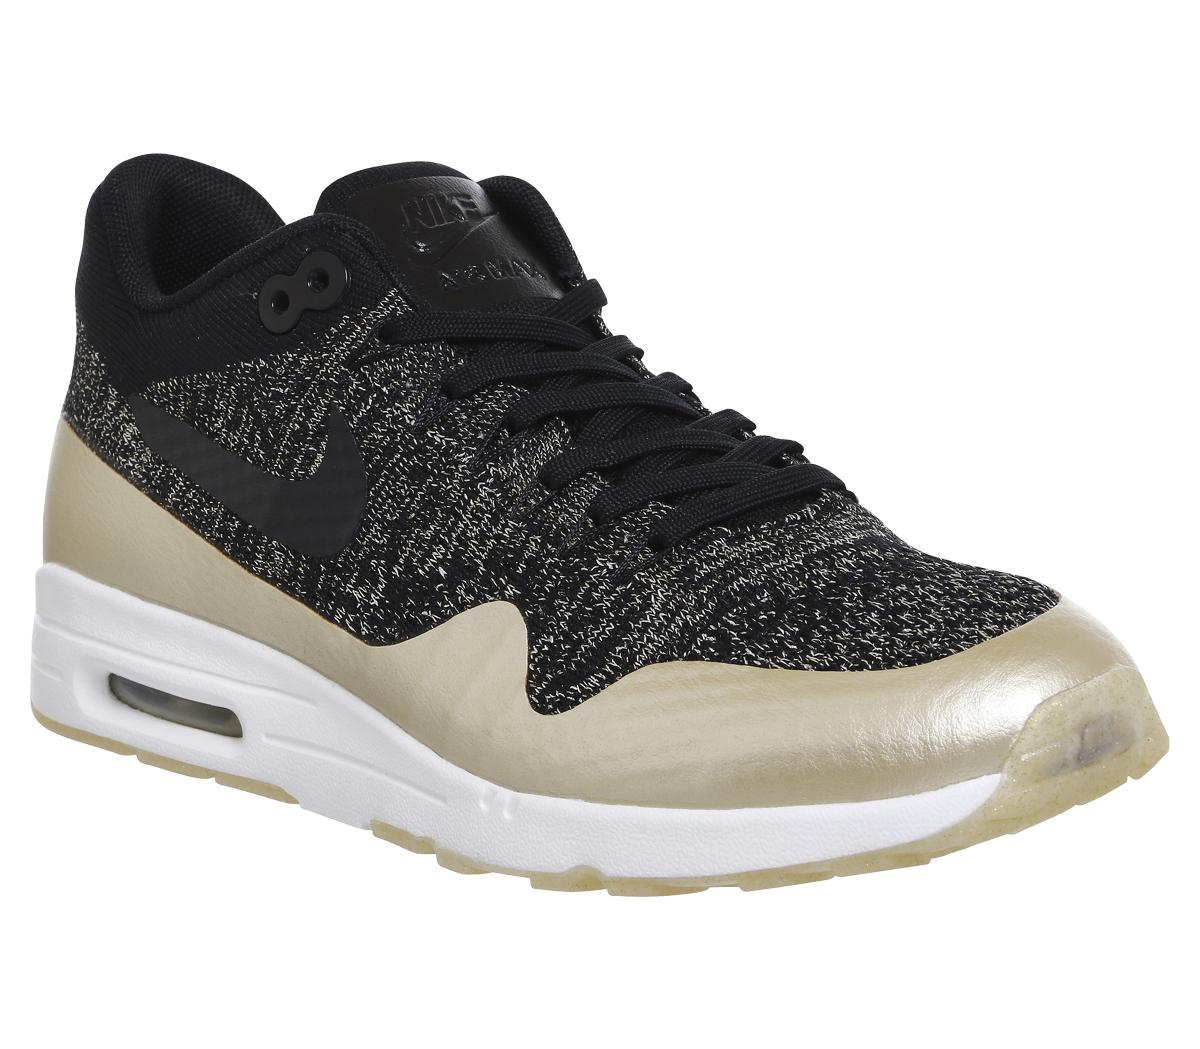 new style 4c714 ab23e Air Max 1 Ultra 2.0 Flyknit. Double tap to zoom into the image. Nike ...